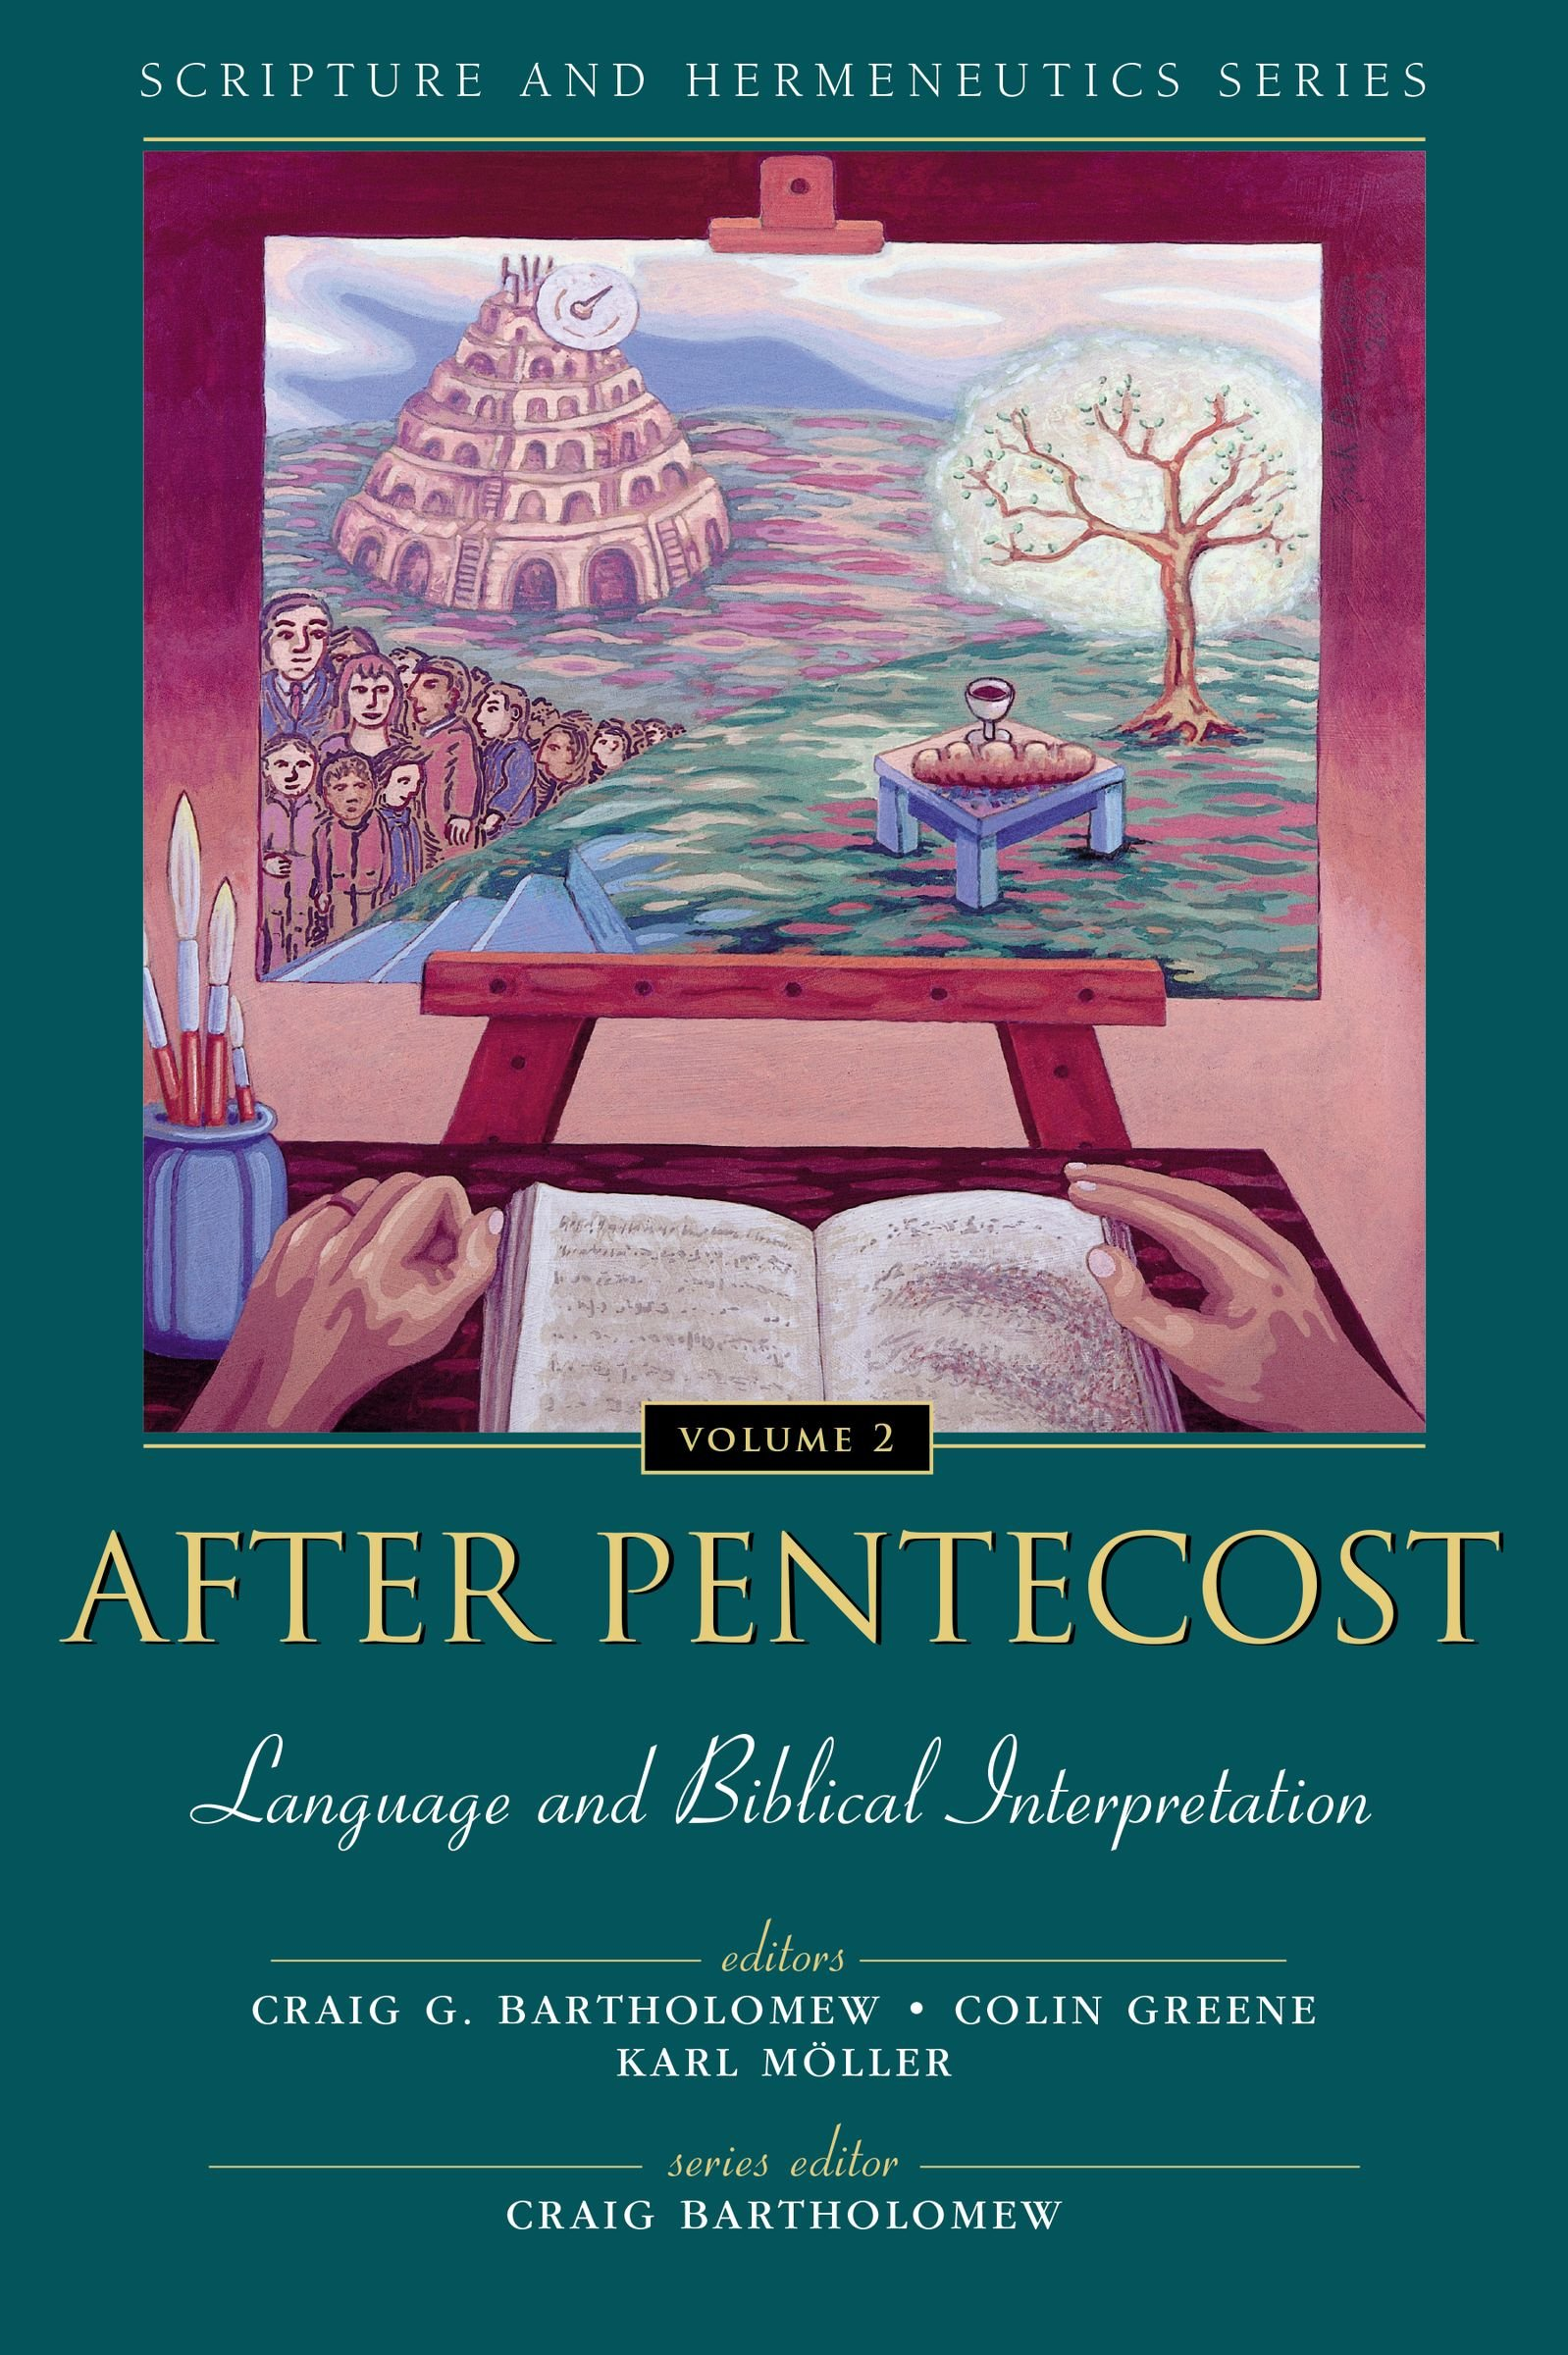 After Pentecost: Language and Biblical Interpretation (Scripture and Hermeneutics Series, V. 2) by HarperCollins Christian Pub.